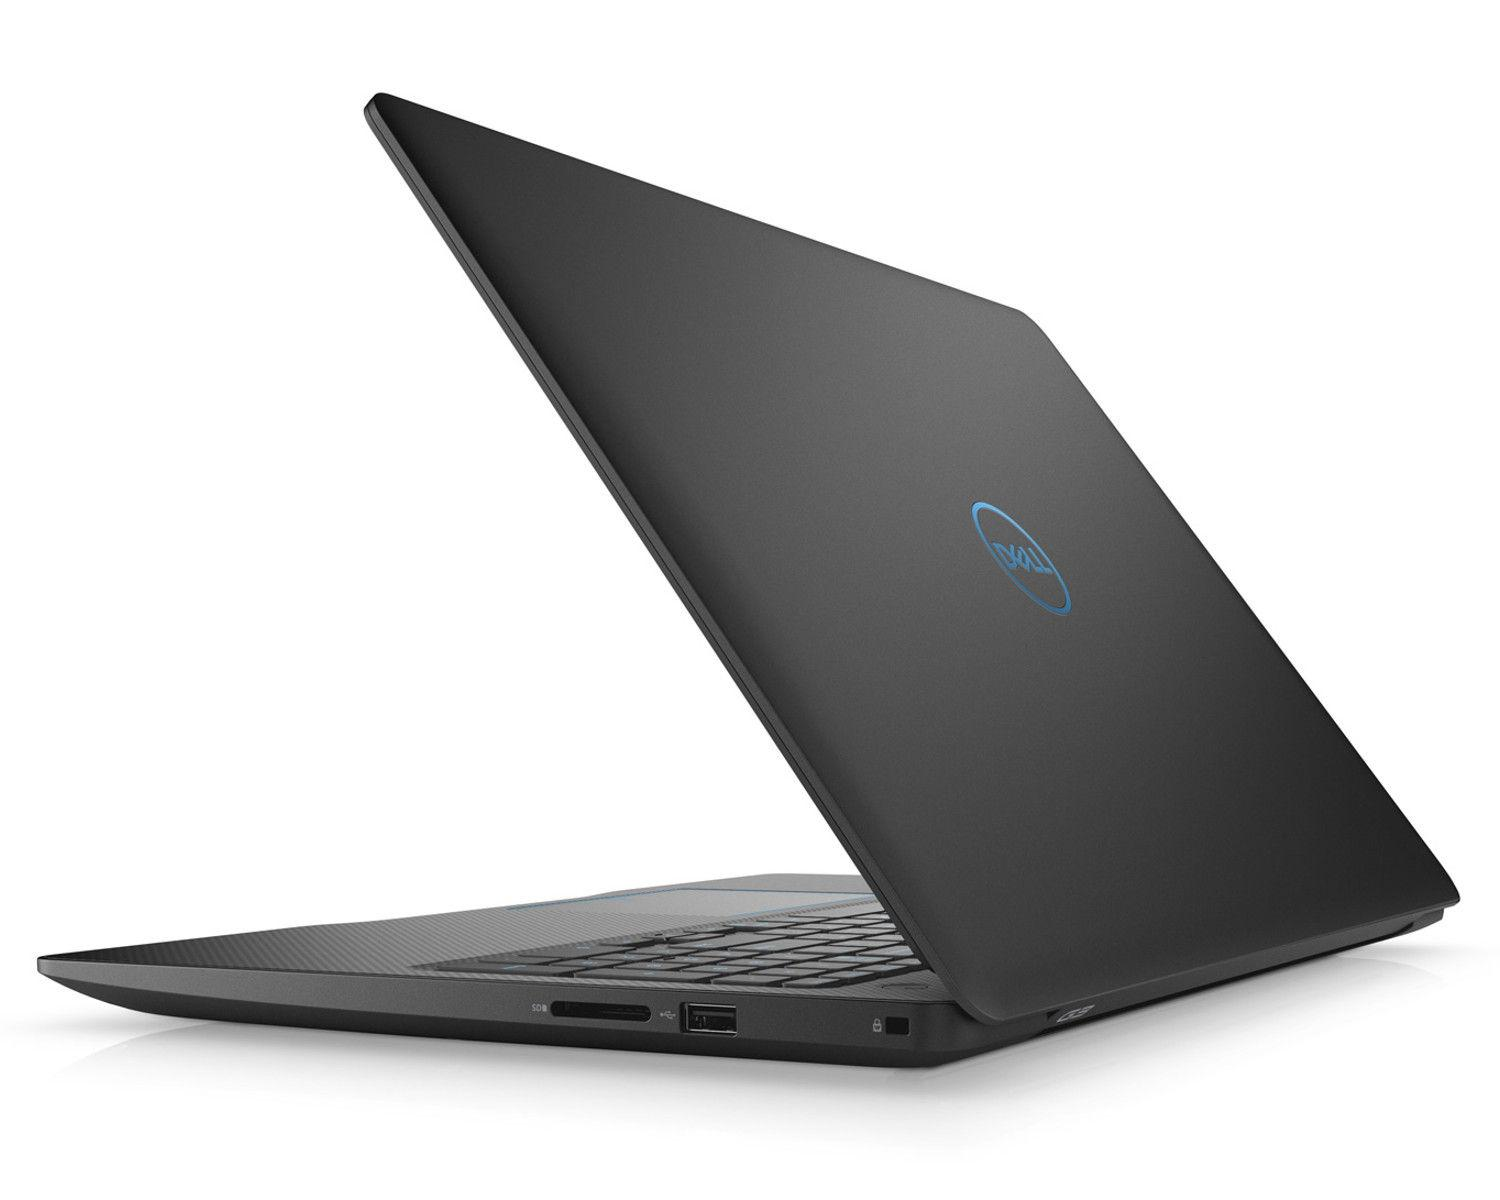 Ordinateur portable Dell Inspiron Gaming G3 17 3779 1901 (LOKI-G-17CFL1901-209-P) Noir - GTX 1060, SSD, i5 - photo 2